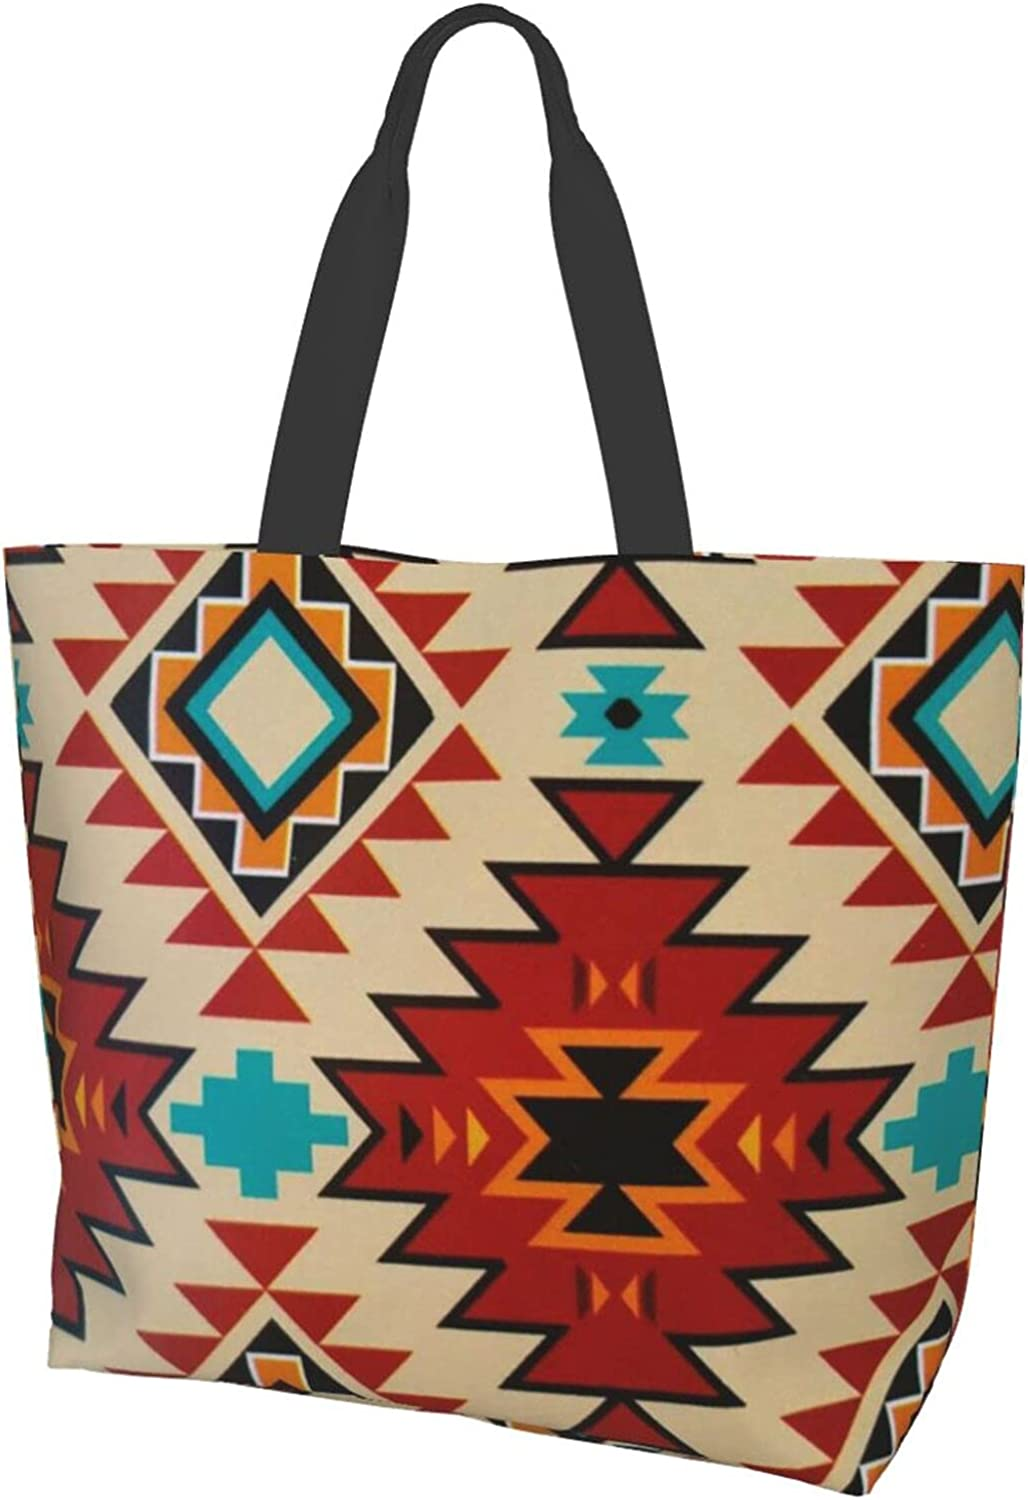 Tote Bag Super sale period limited Fitness Beach Travel Popular Bag-Geometric Triba Daily Shoulder